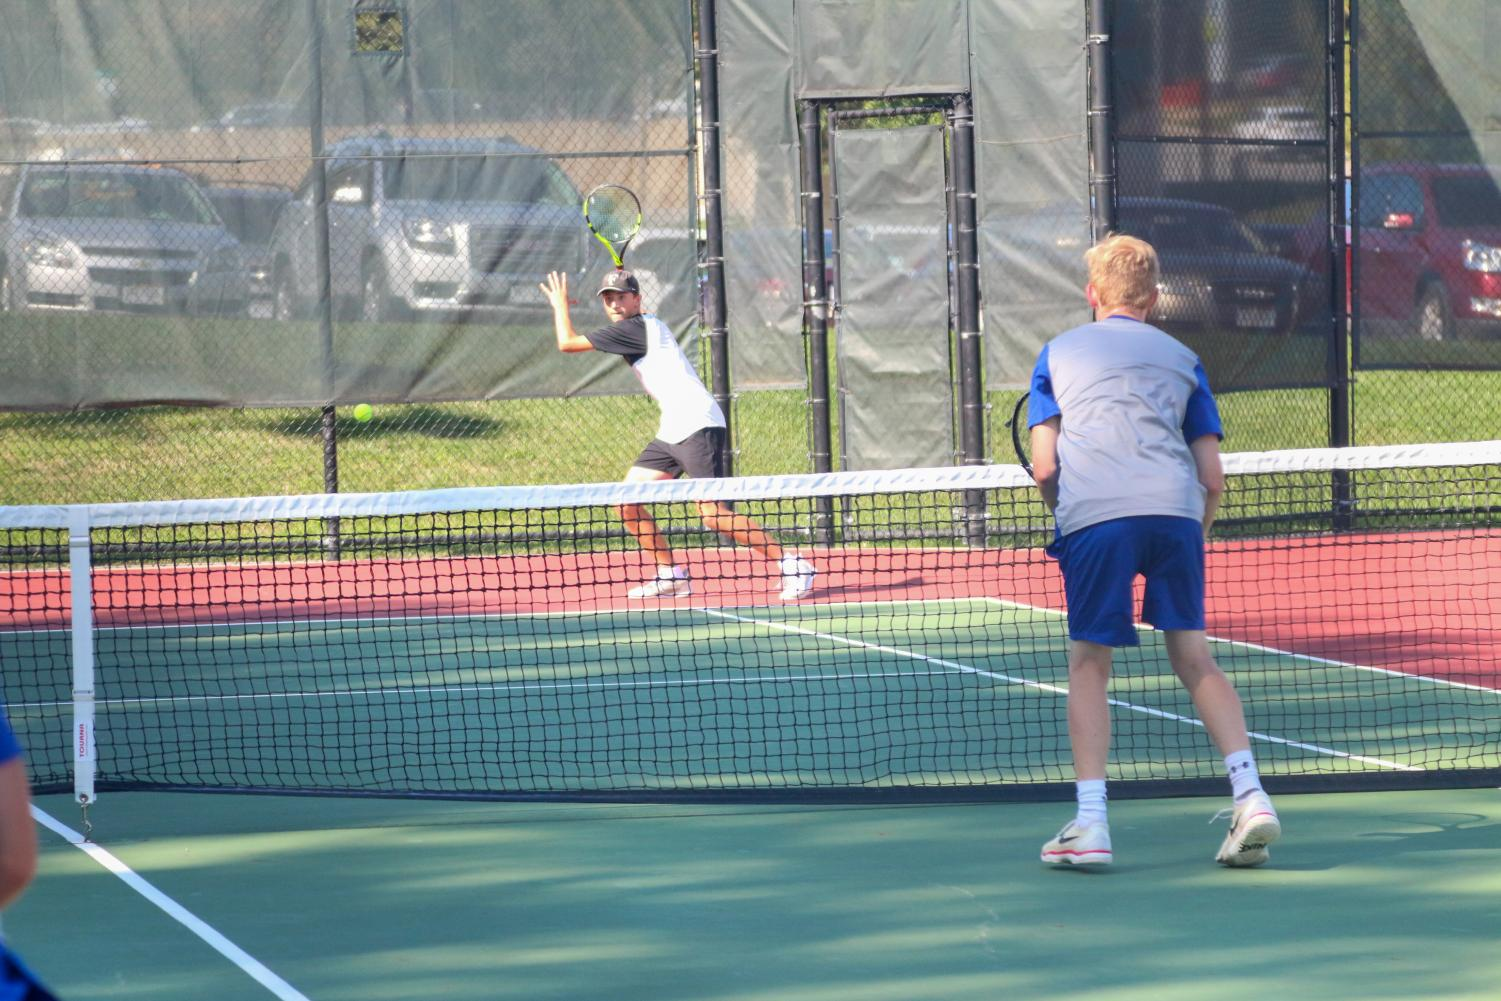 The 1 doubles team of Rue and Kugler were the runners-up at the Metros Conference Tournament.